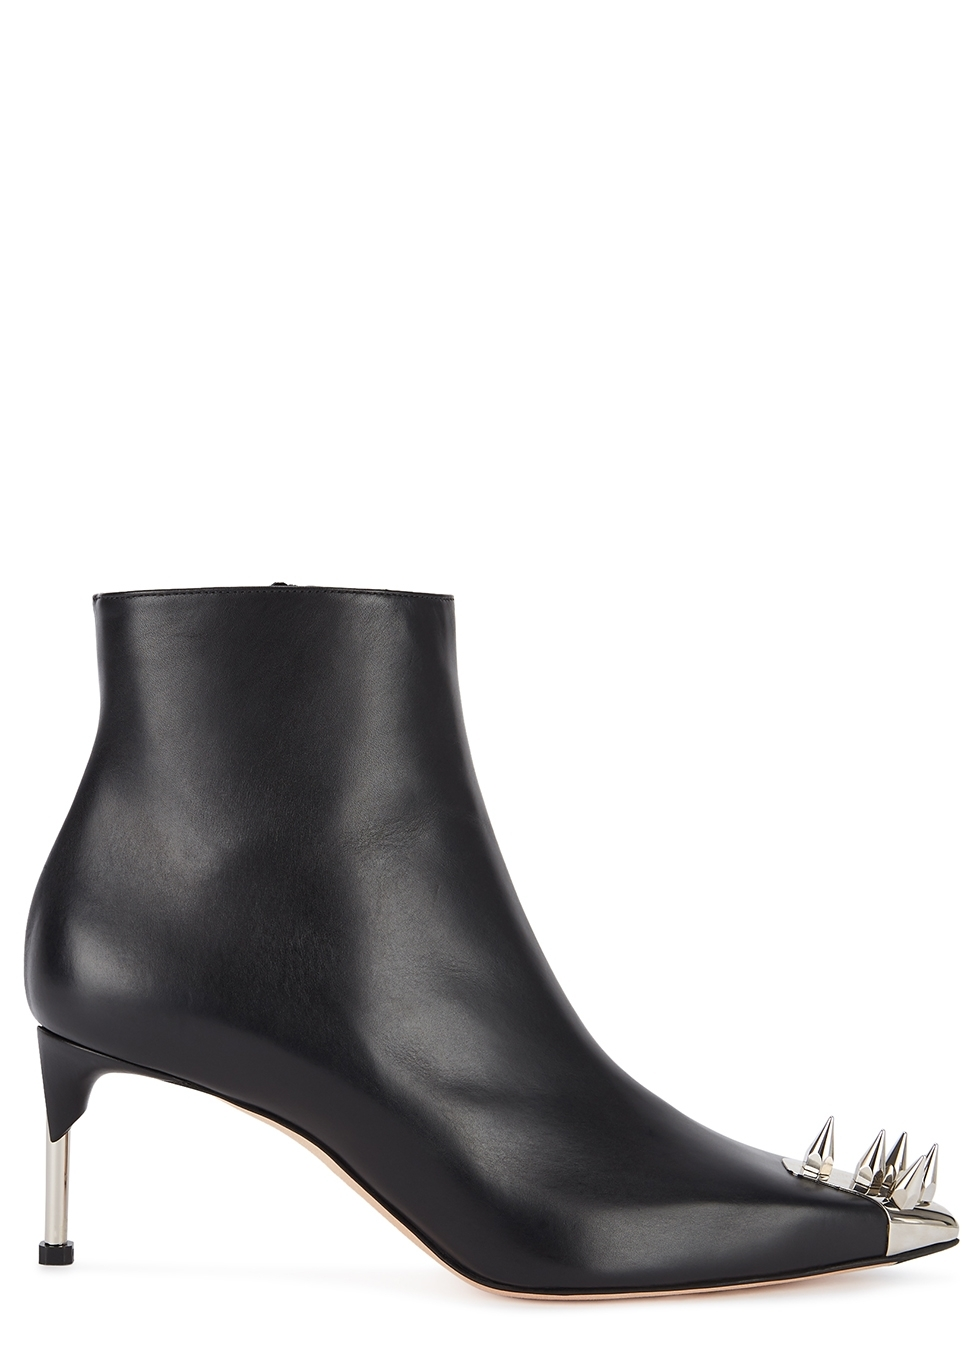 f95bef121 Women's Designer Ankle Boots - Leather & Suede - Harvey Nichols